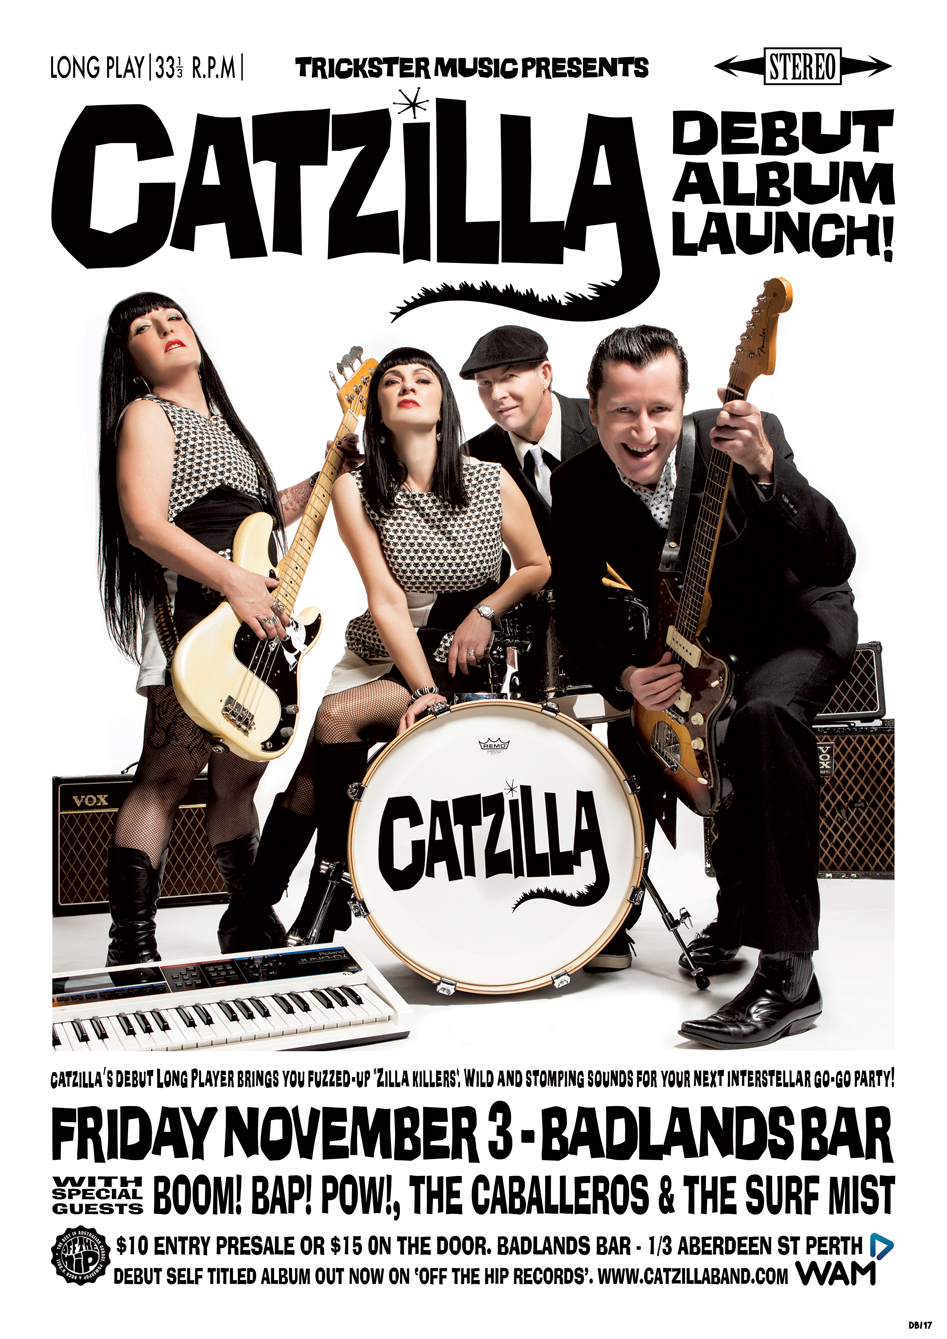 catzilla launch posterFACEBOOK.jpg